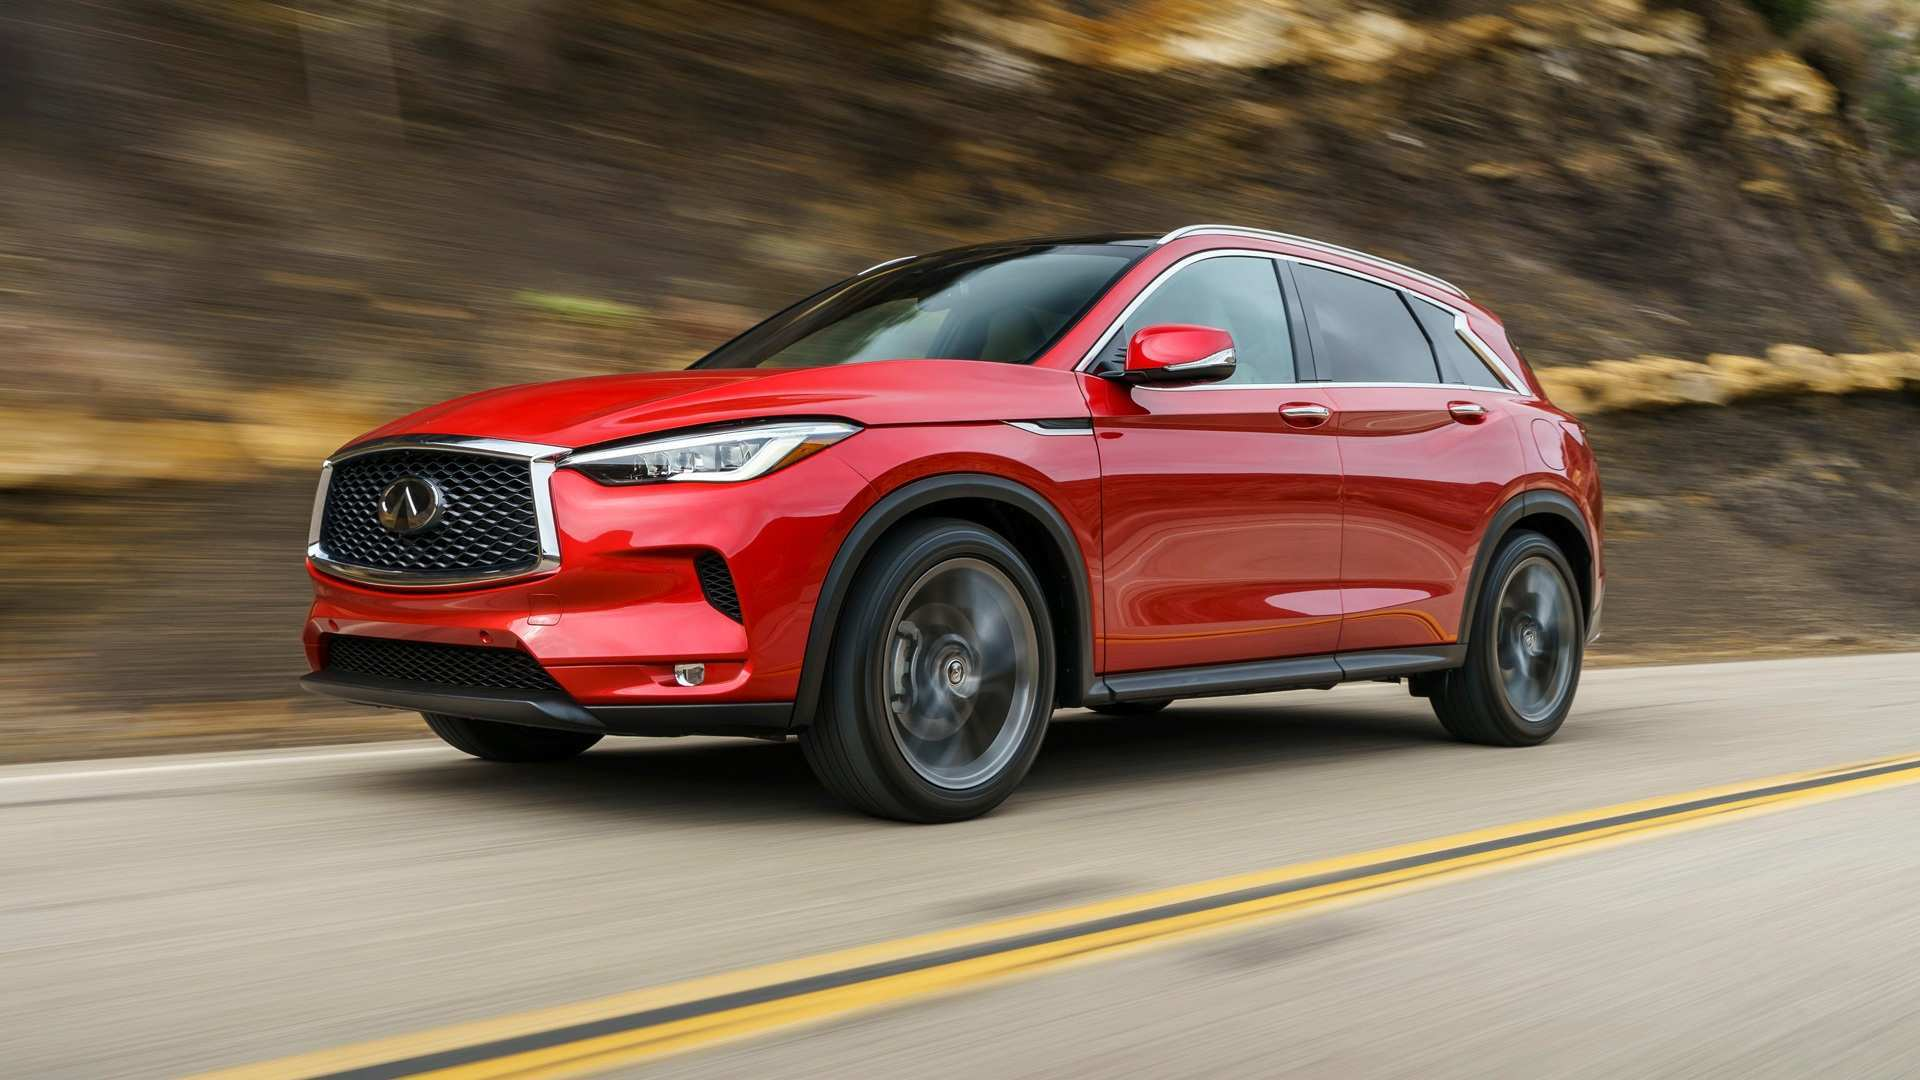 75 All New 2020 Infiniti Qx50 Weight Wallpaper by 2020 Infiniti Qx50 Weight